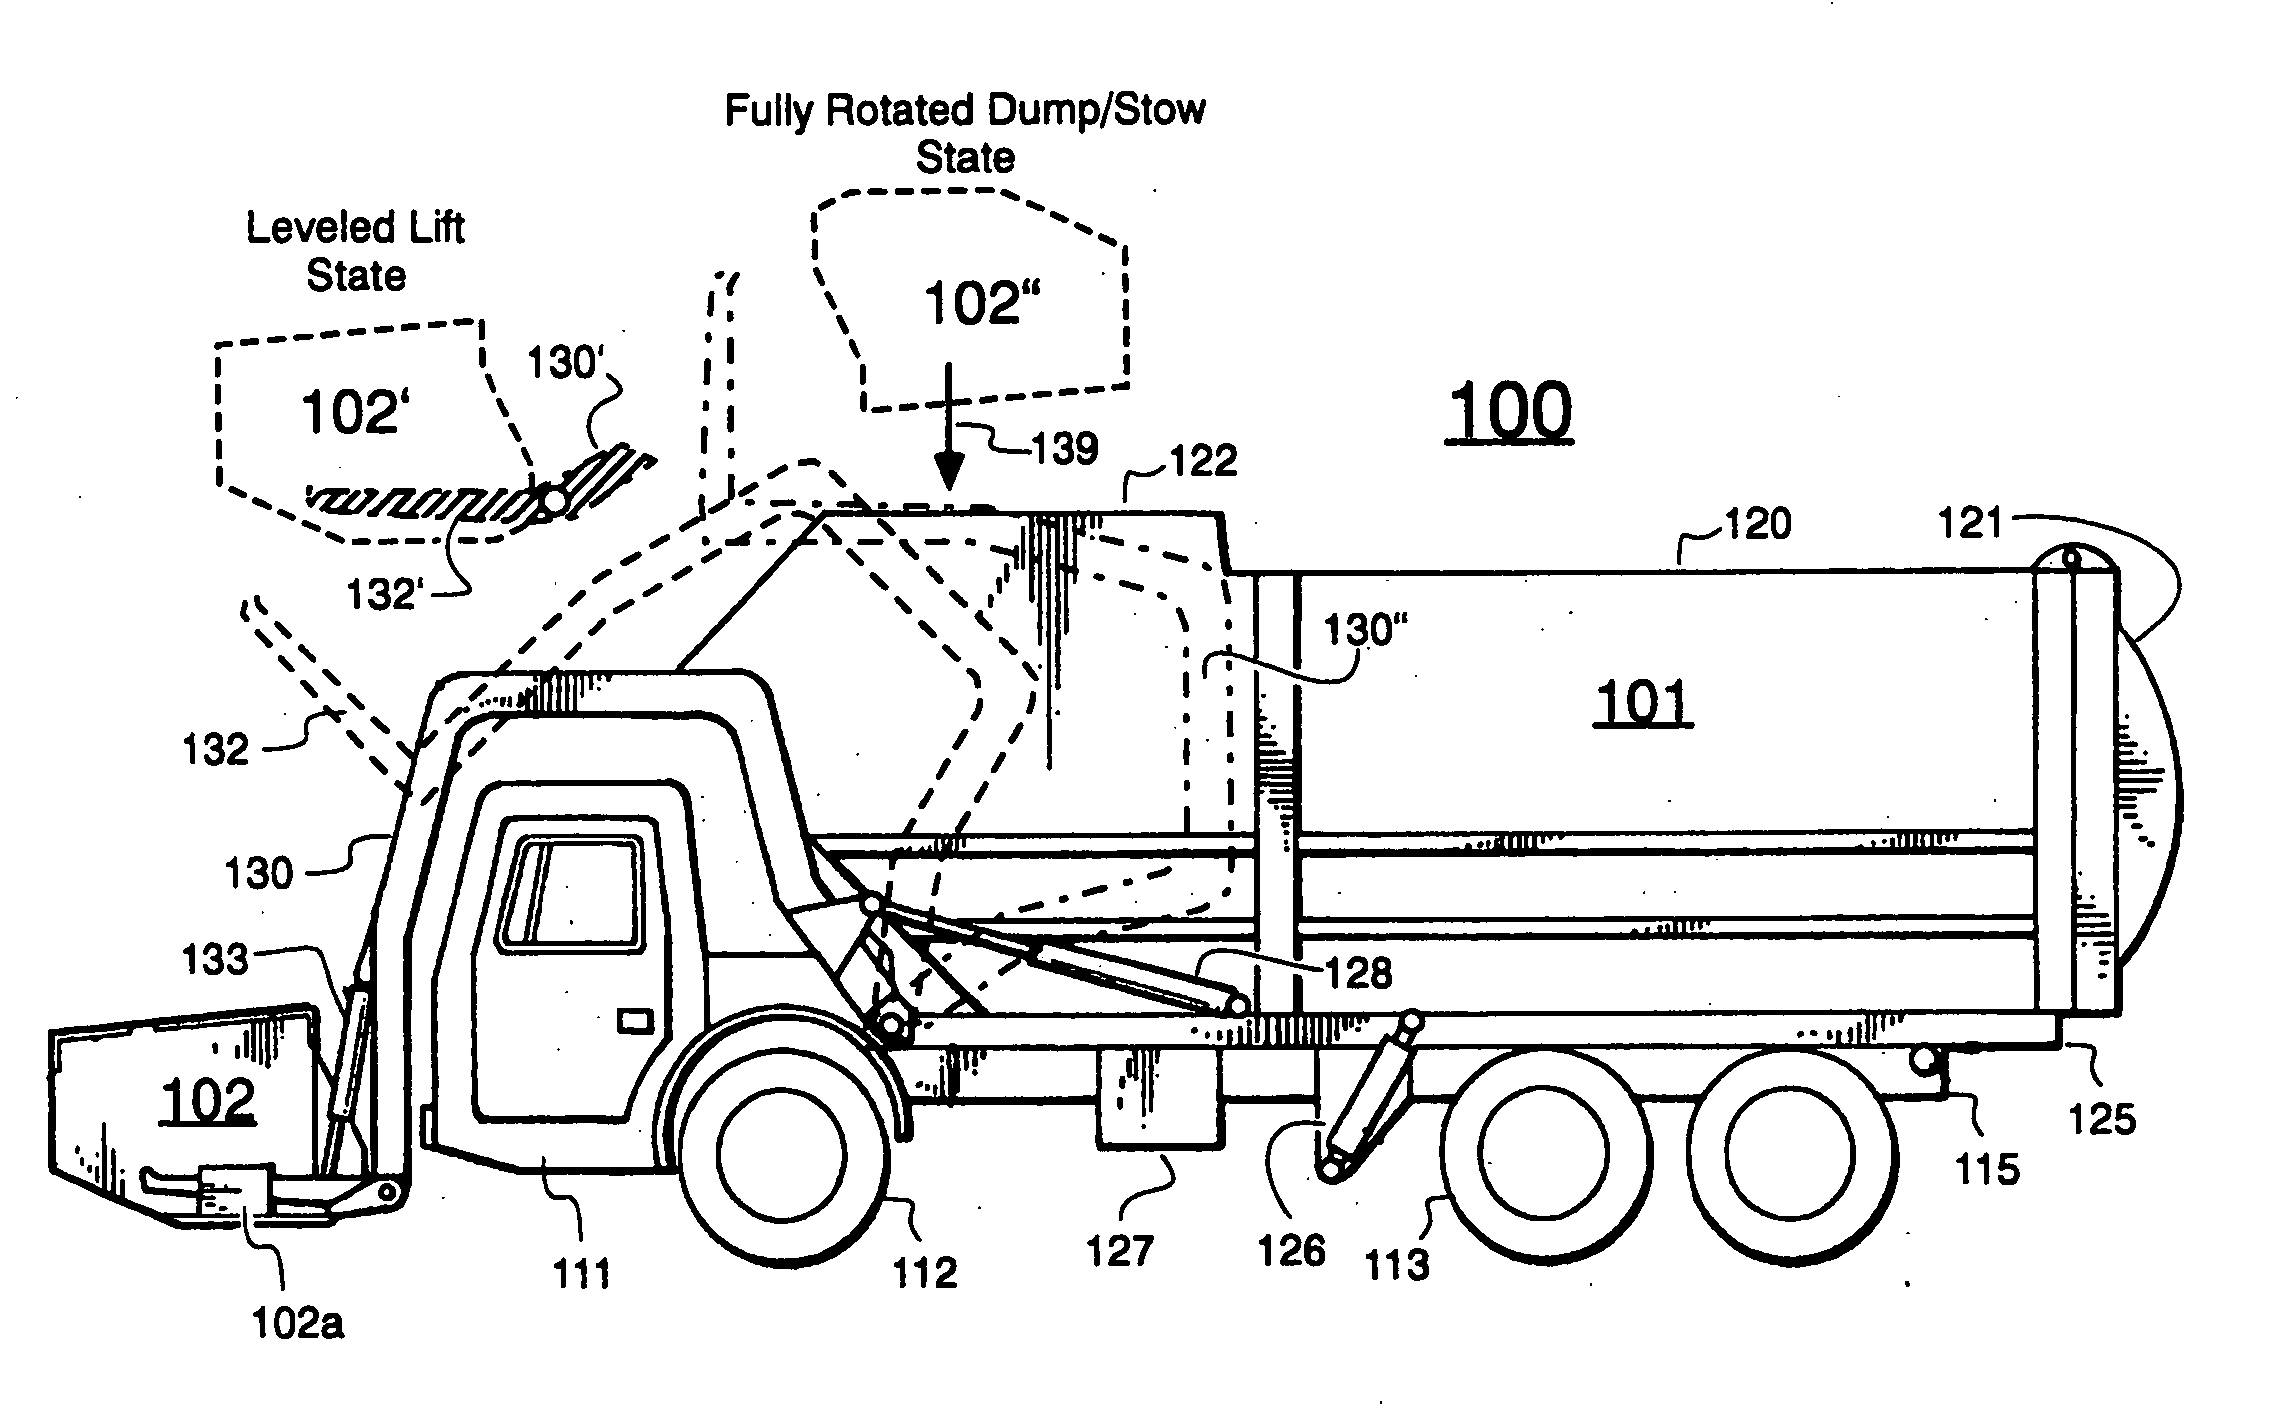 diagram of hydraulic system on dump truck